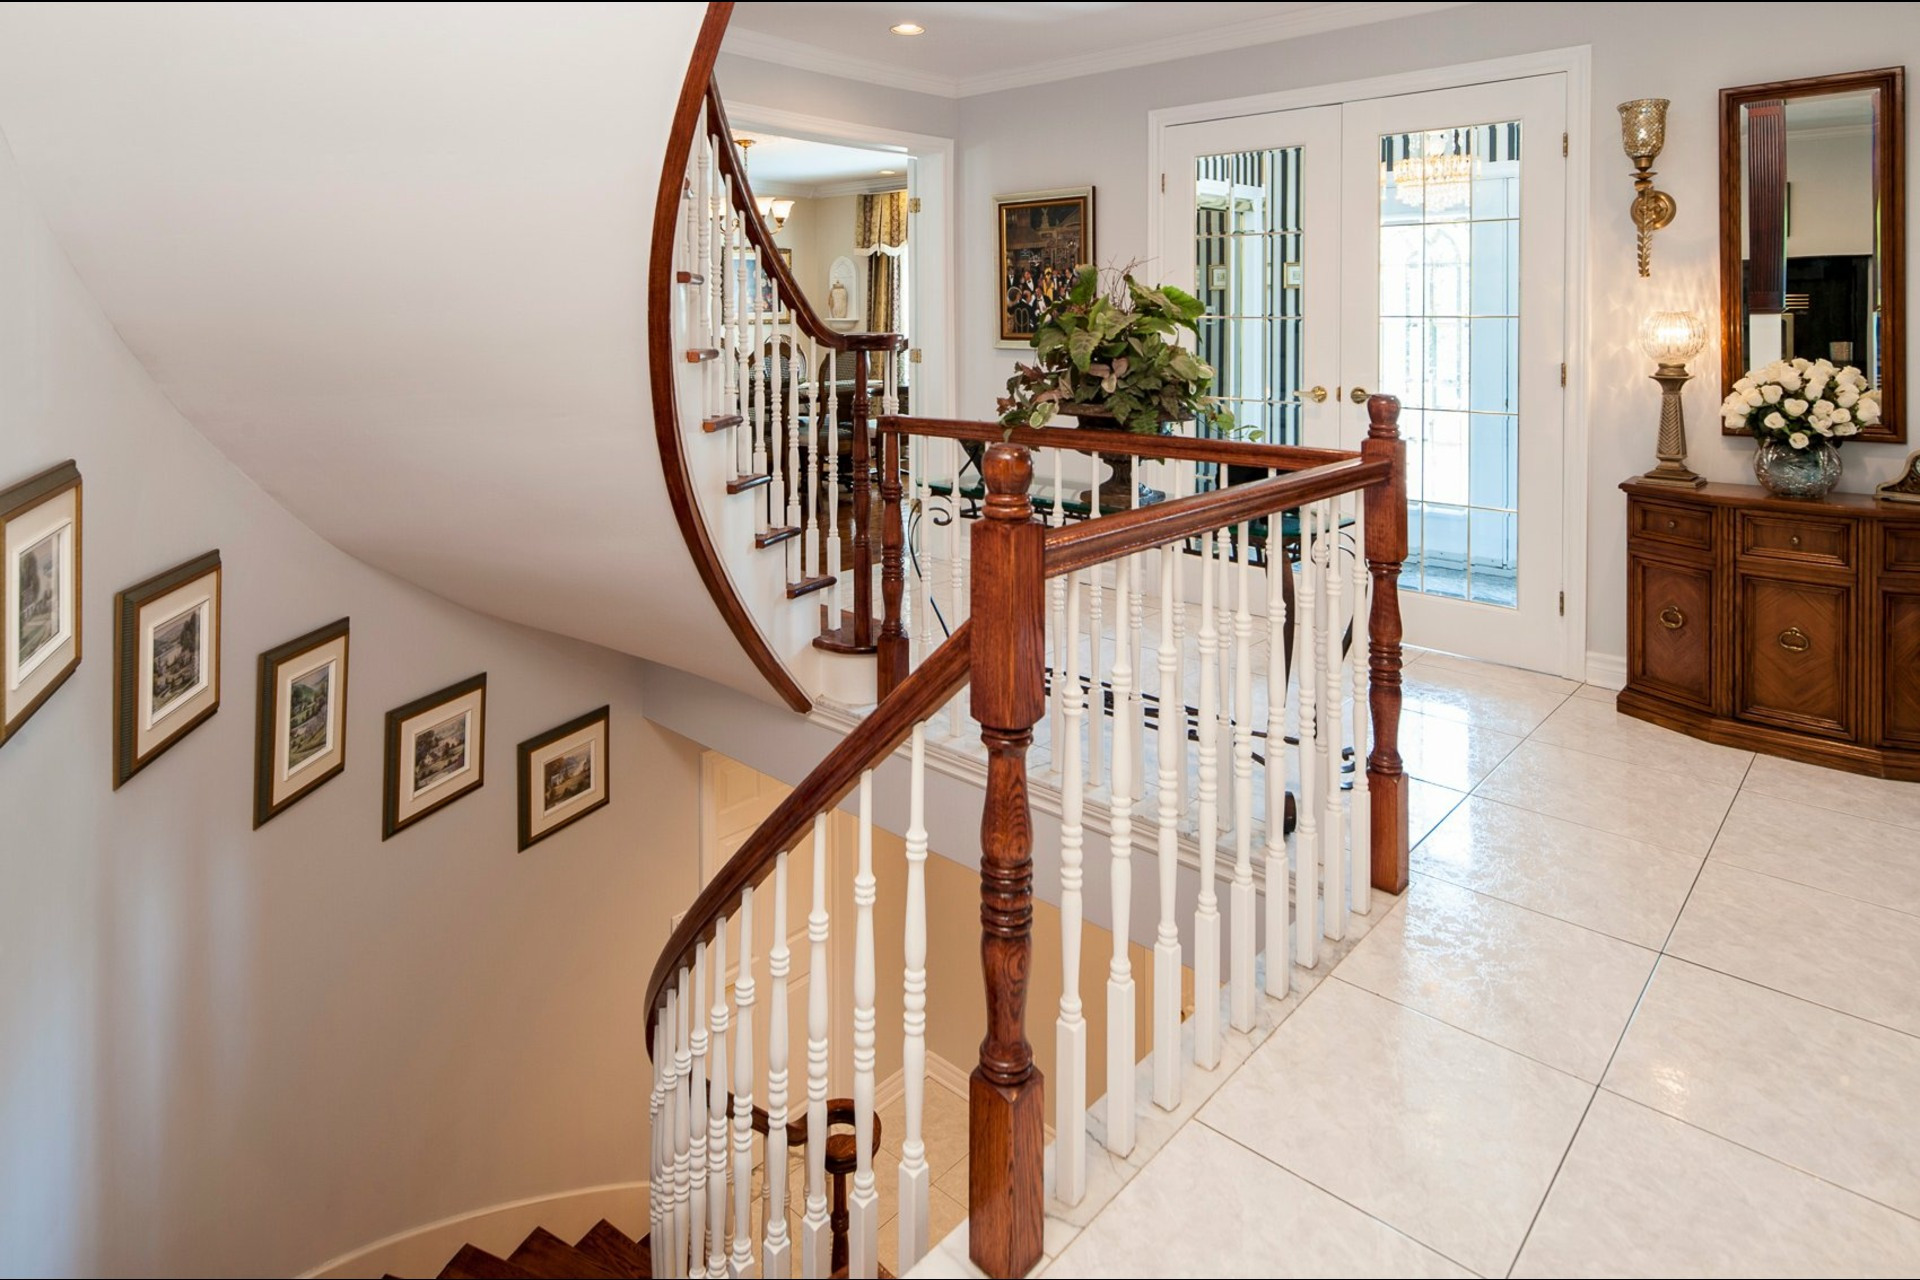 image 5 - House For sale Beaconsfield